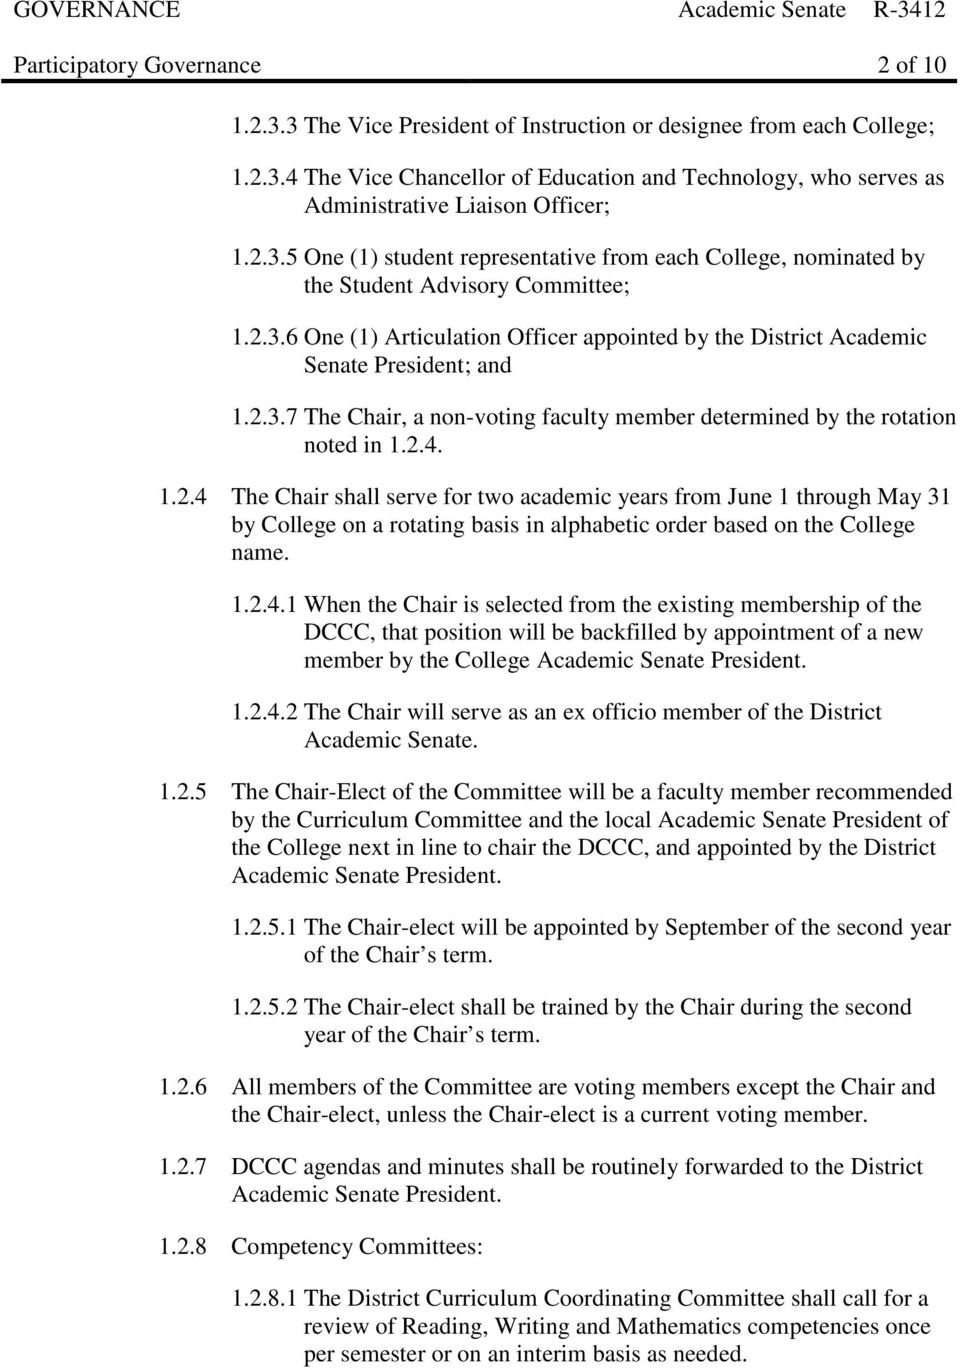 2.4. 1.2.4 The Chair shall serve for two academic years from June 1 through May 31 by College on a rotating basis in alphabetic order based on the College name. 1.2.4.1 When the Chair is selected from the existing membership of the DCCC, that position will be backfilled by appointment of a new member by the College Academic Senate President.